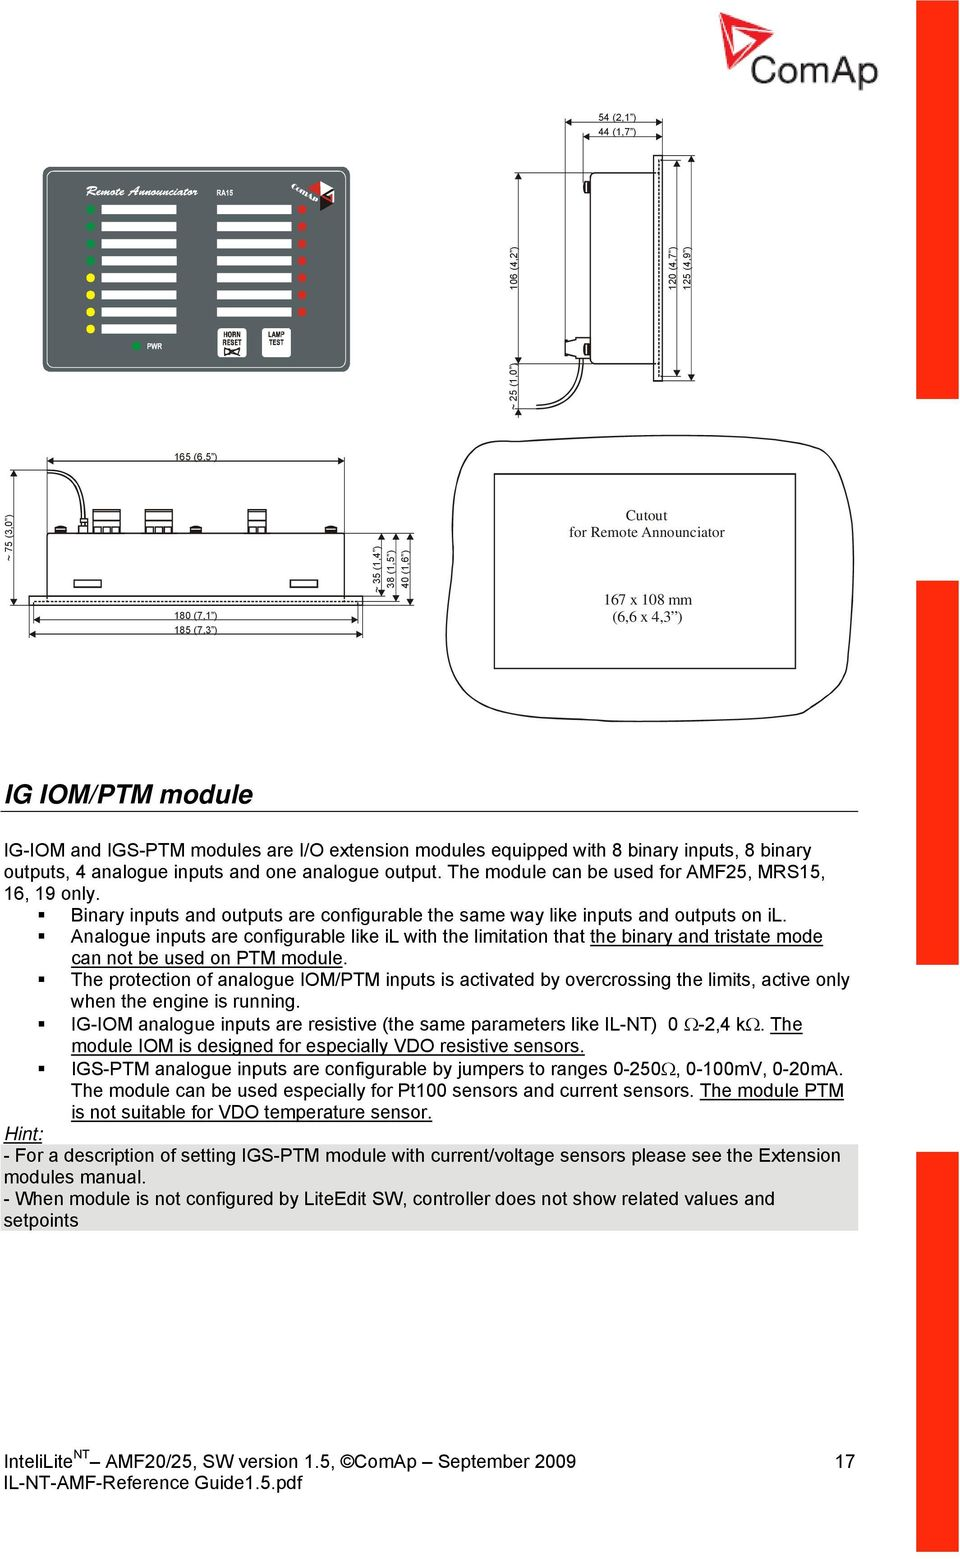 Intelilite Nt Amf Reference Guide Modular Gen Set Controller Panel Wiring Diagram The Module Can Be Used For Amf25 Mrs15 16 19 Only Binary